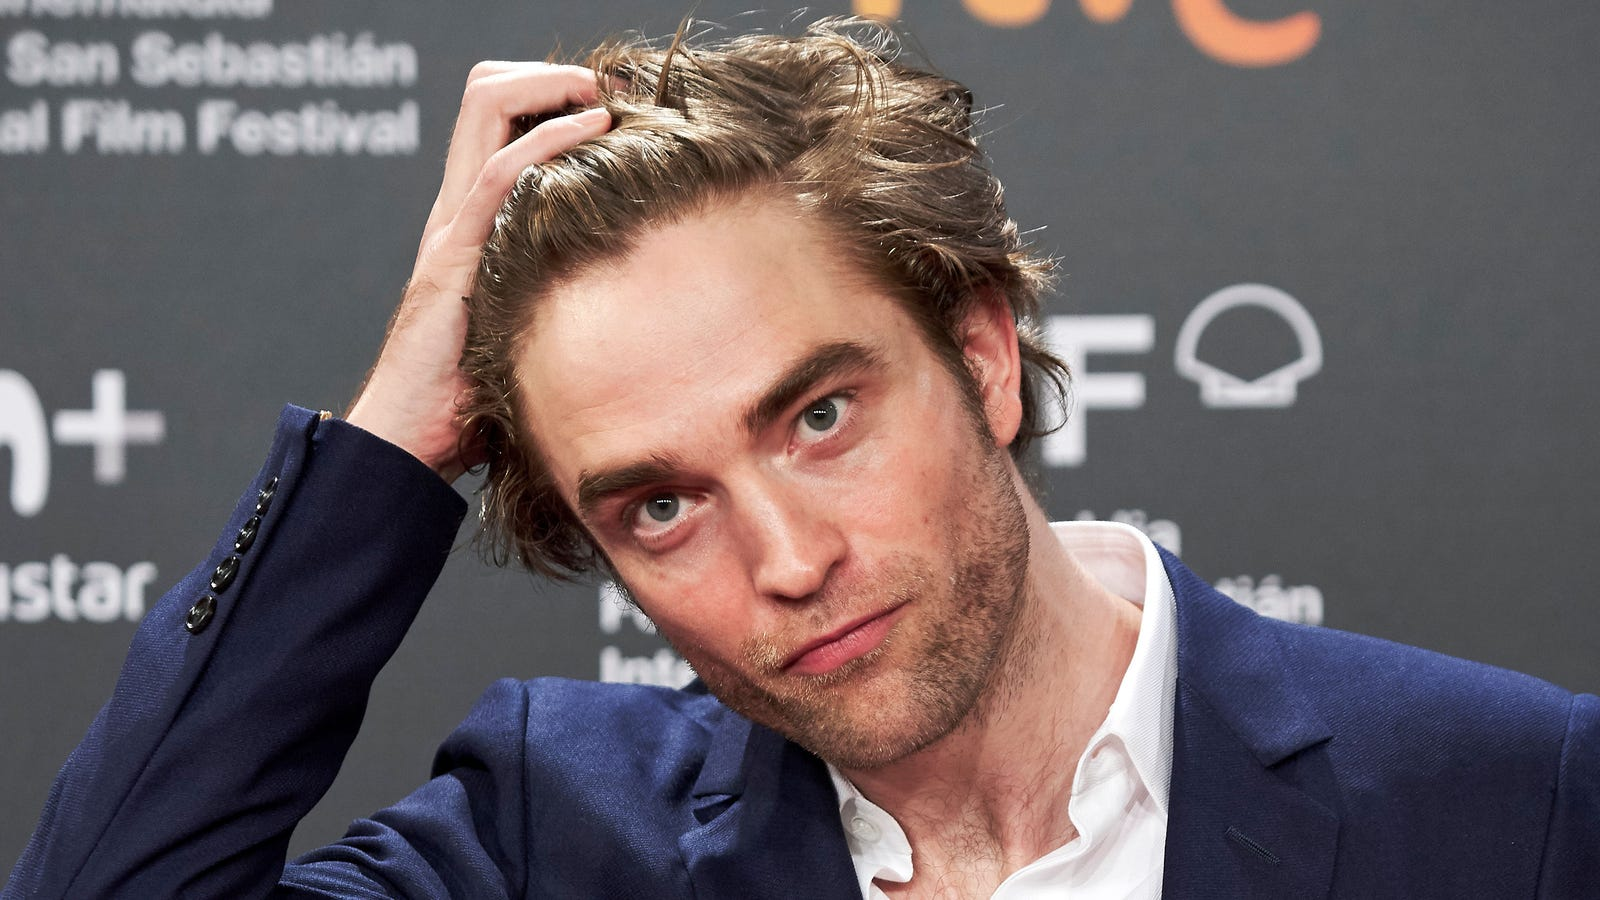 If You're Still Calling Robert Pattinson a Sparkly Vampire, You're Not Paying Attention